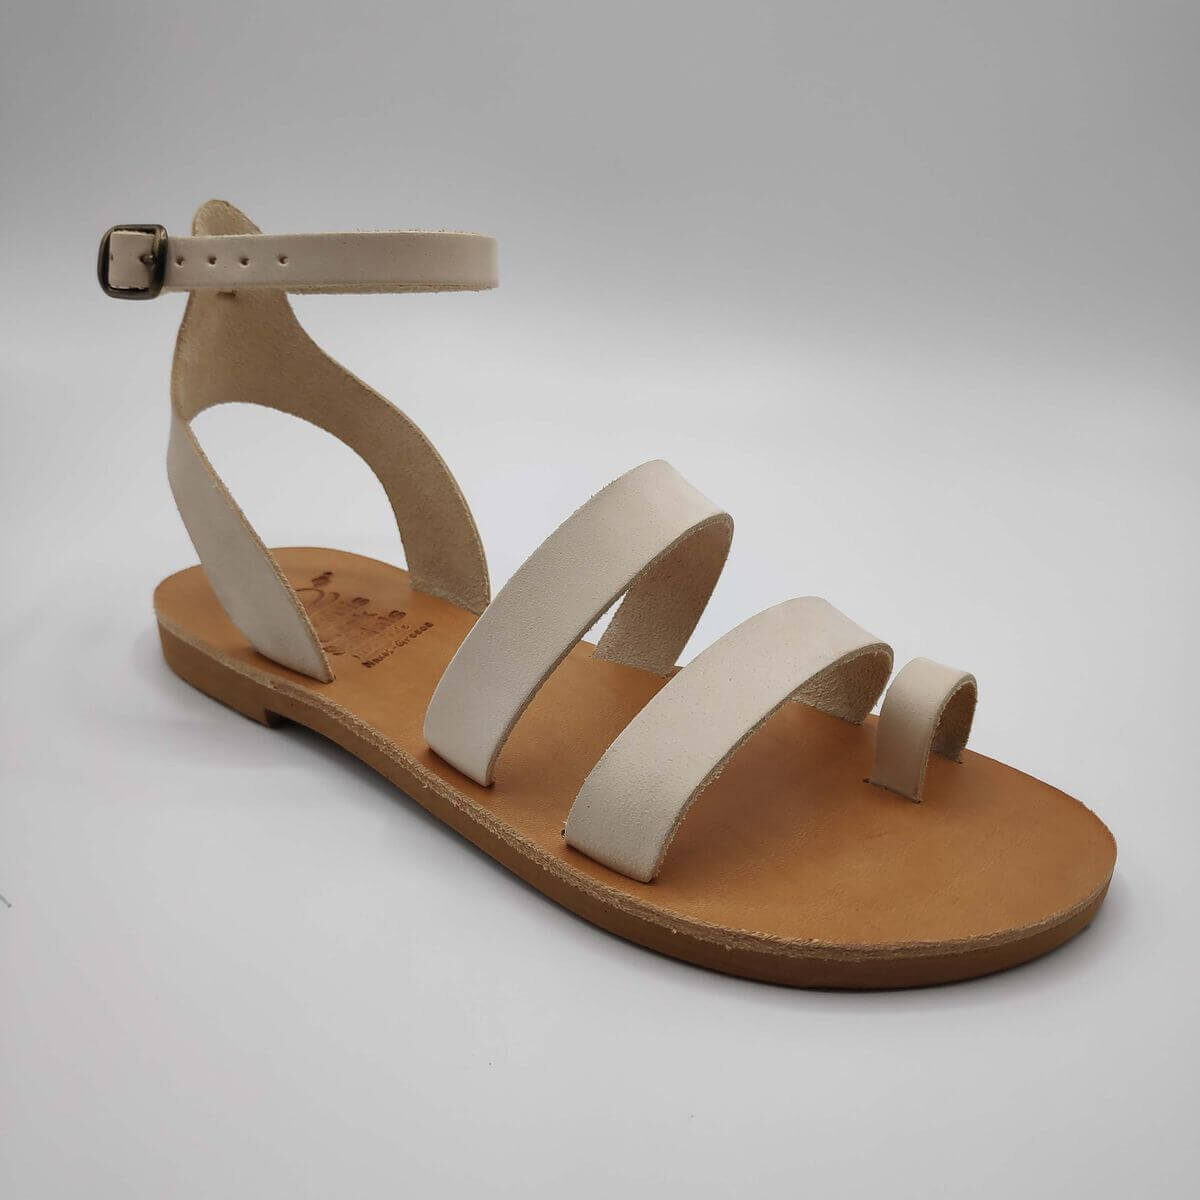 White nubuck leather dressy sandals with two straps, toe ring and high ankle strap, side view single